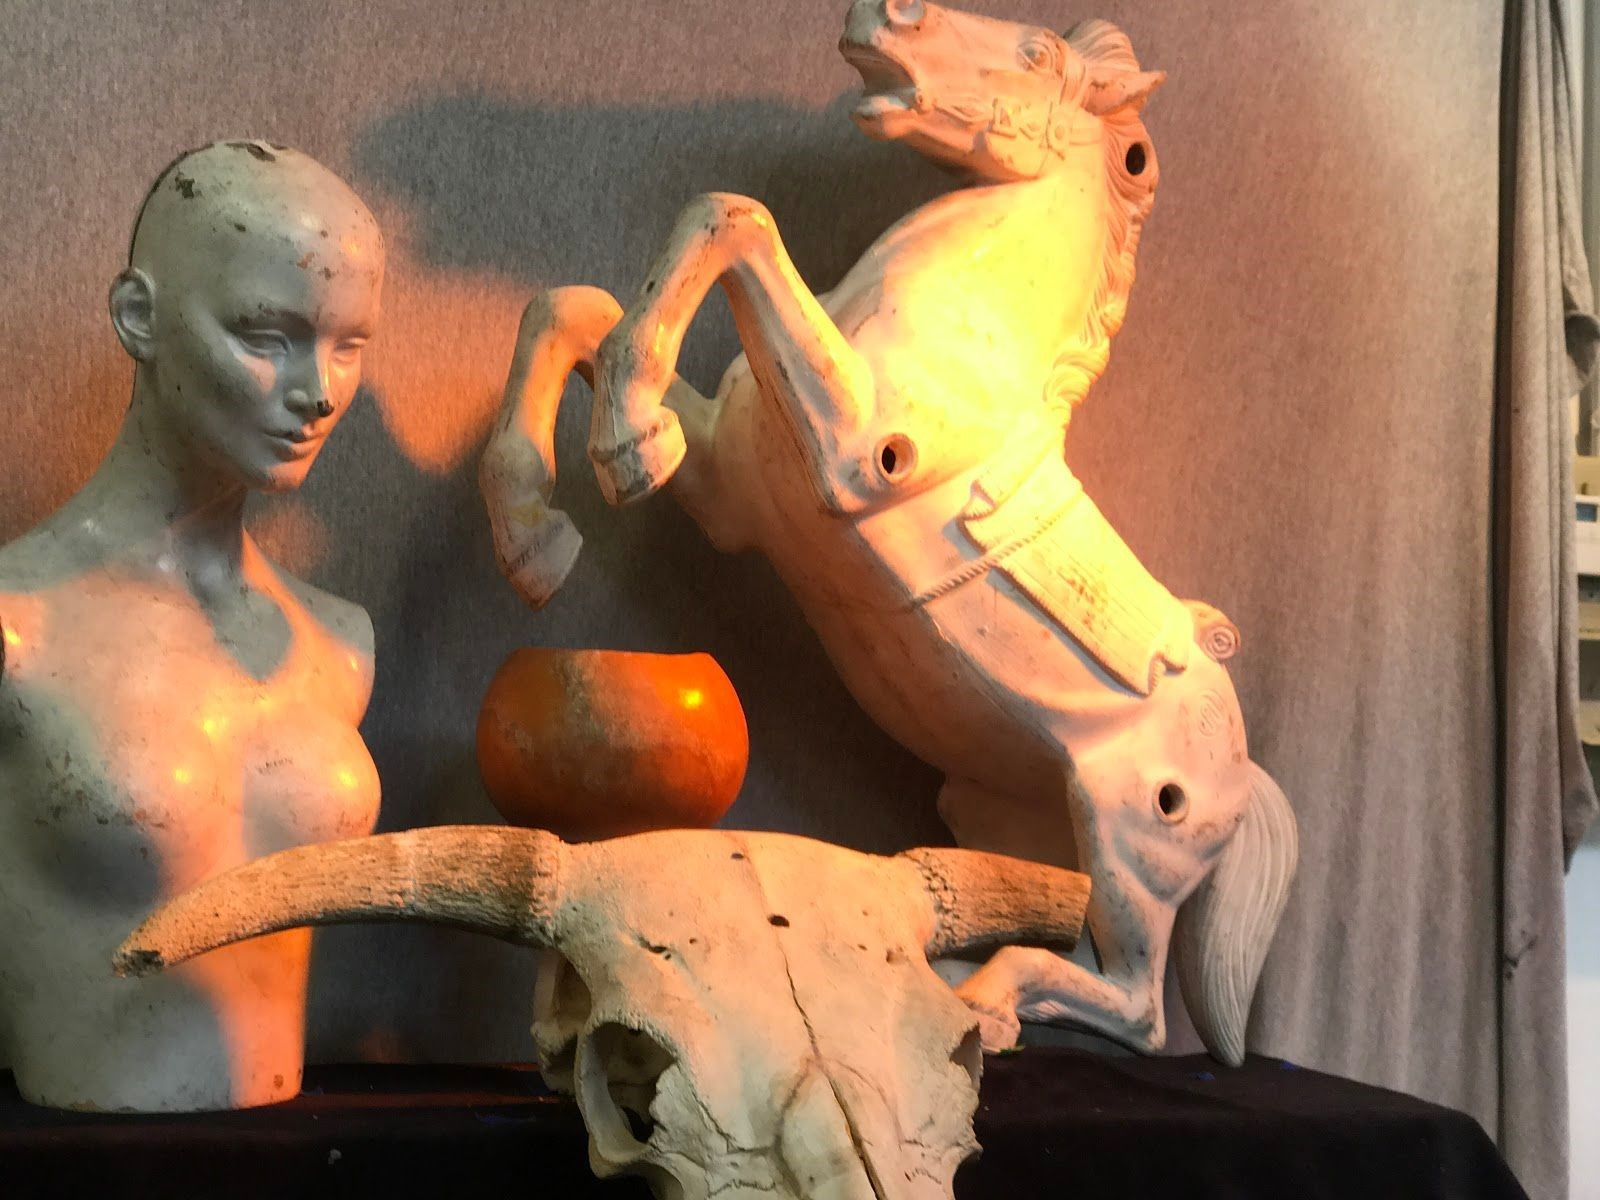 These figures were used for beginning art students to paint. An orange light is positioned overhead to give off a sunset vibe. Photo taken on Sep. ?, 2017 by Jasmine.